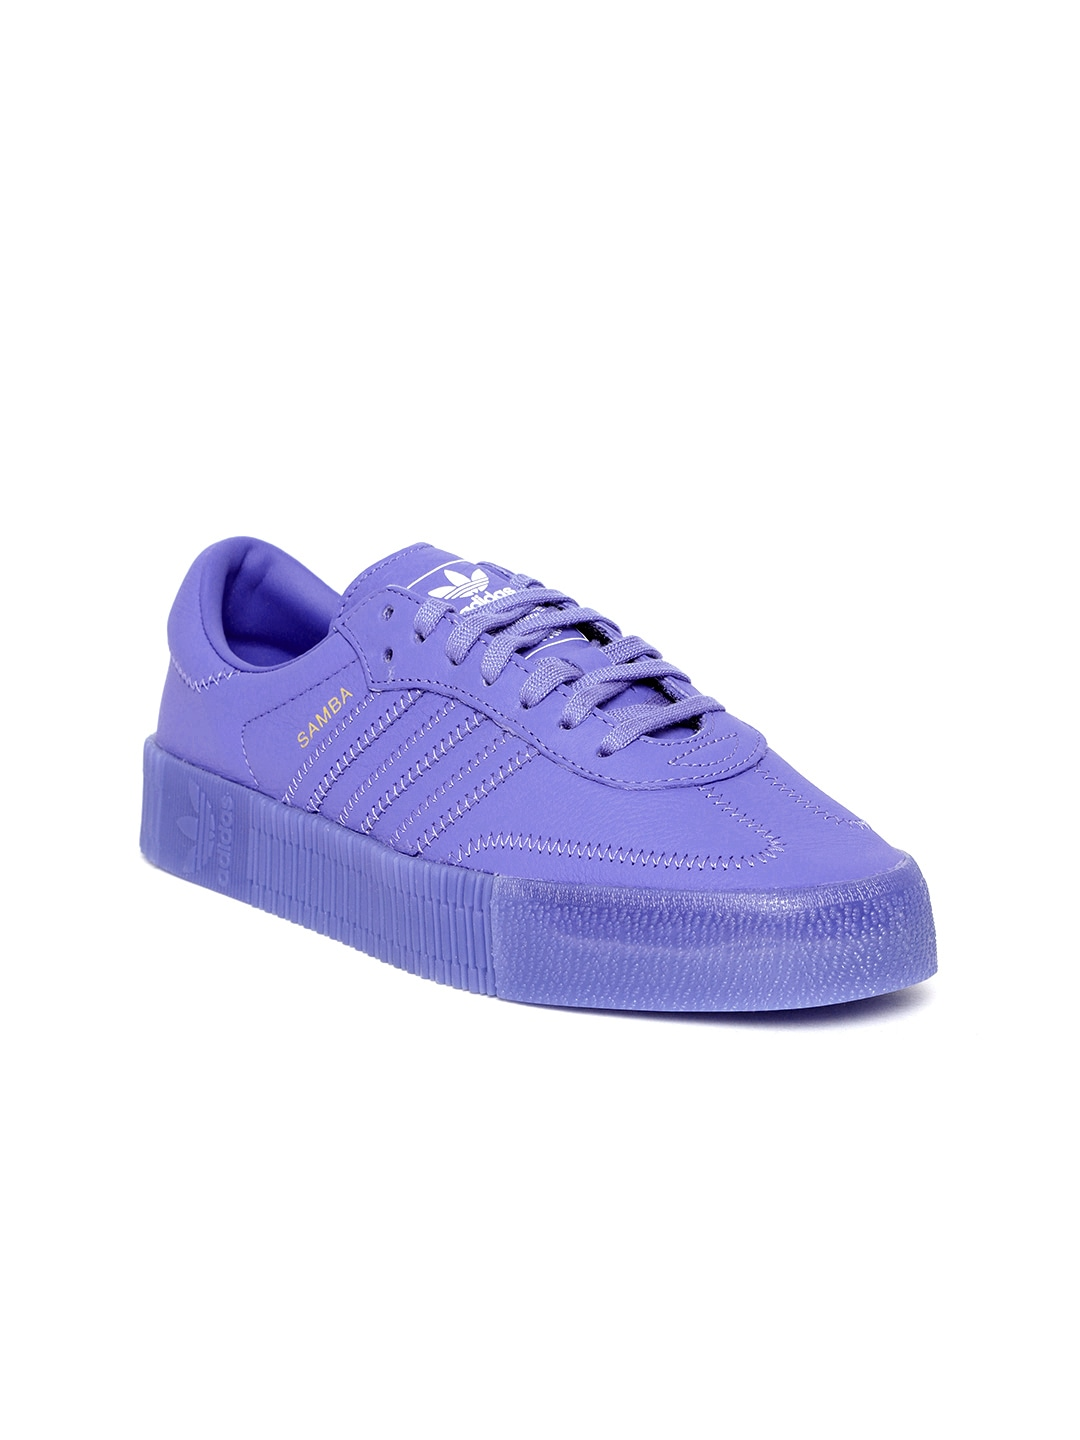 designer fashion c489a 638dd Purple Adidas - Buy Purple Adidas online in India